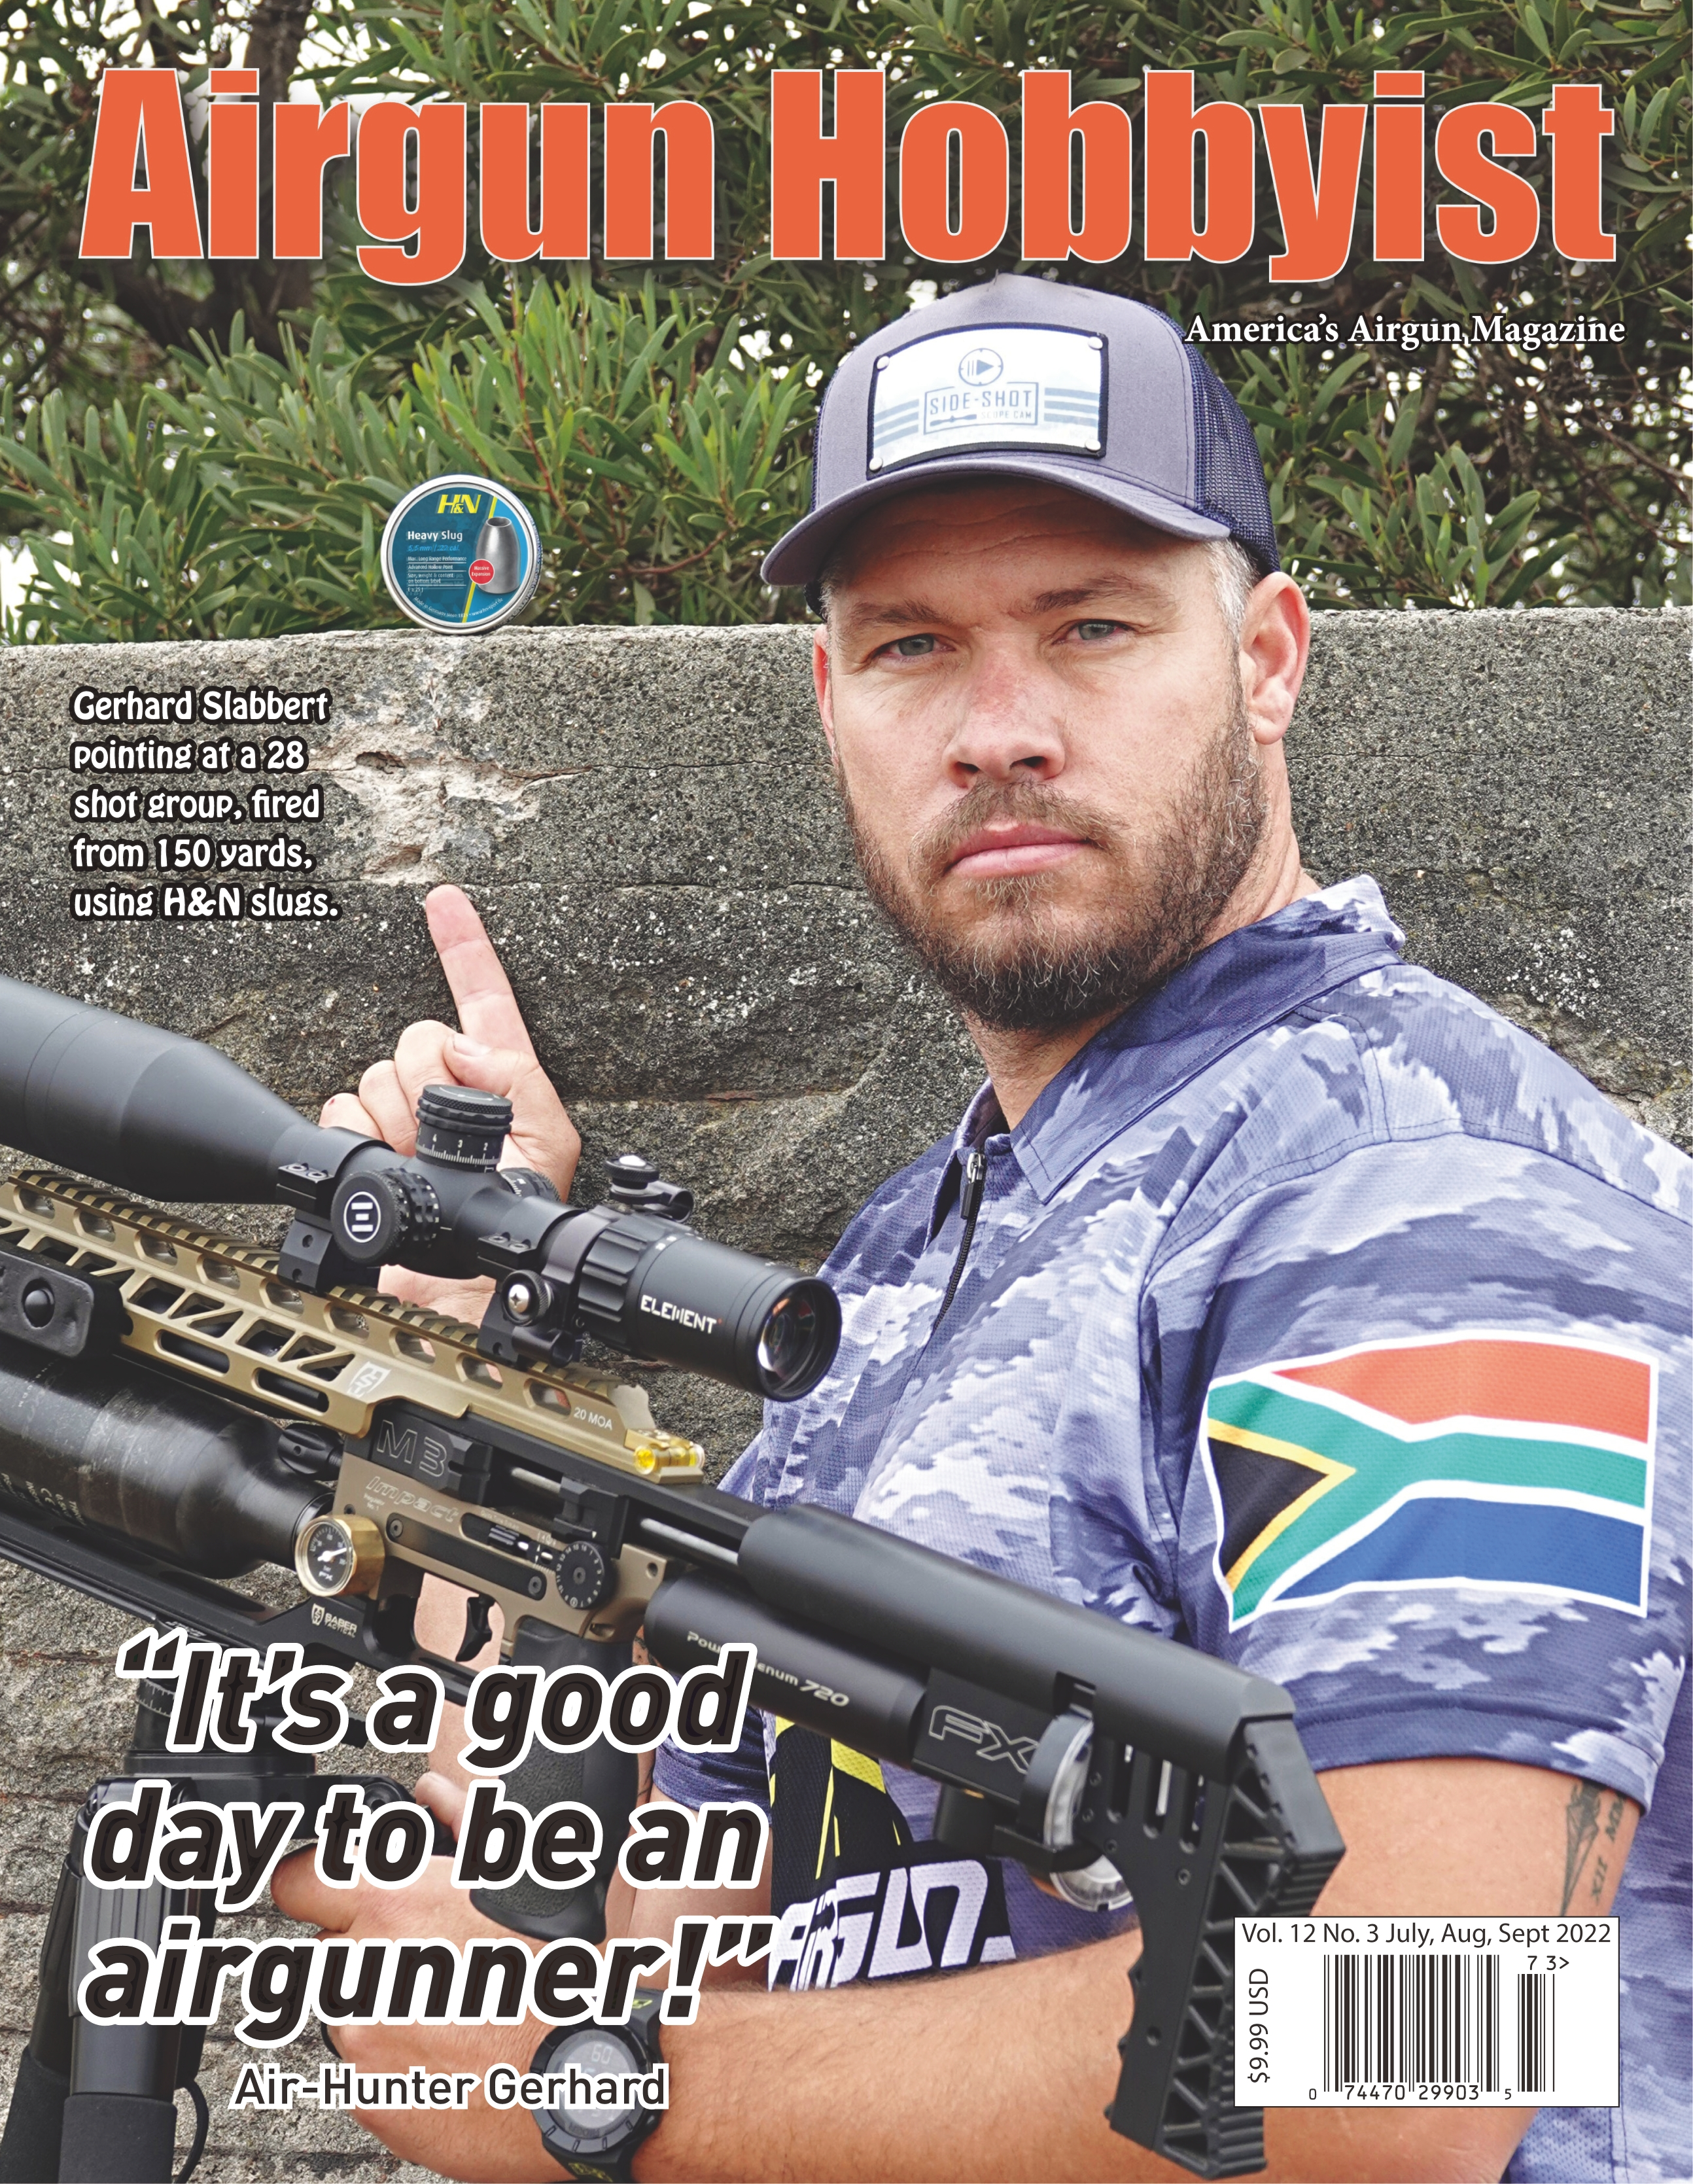 Airgun Hobbyist Magazine The Ultimate Avian Challenge - by Ji